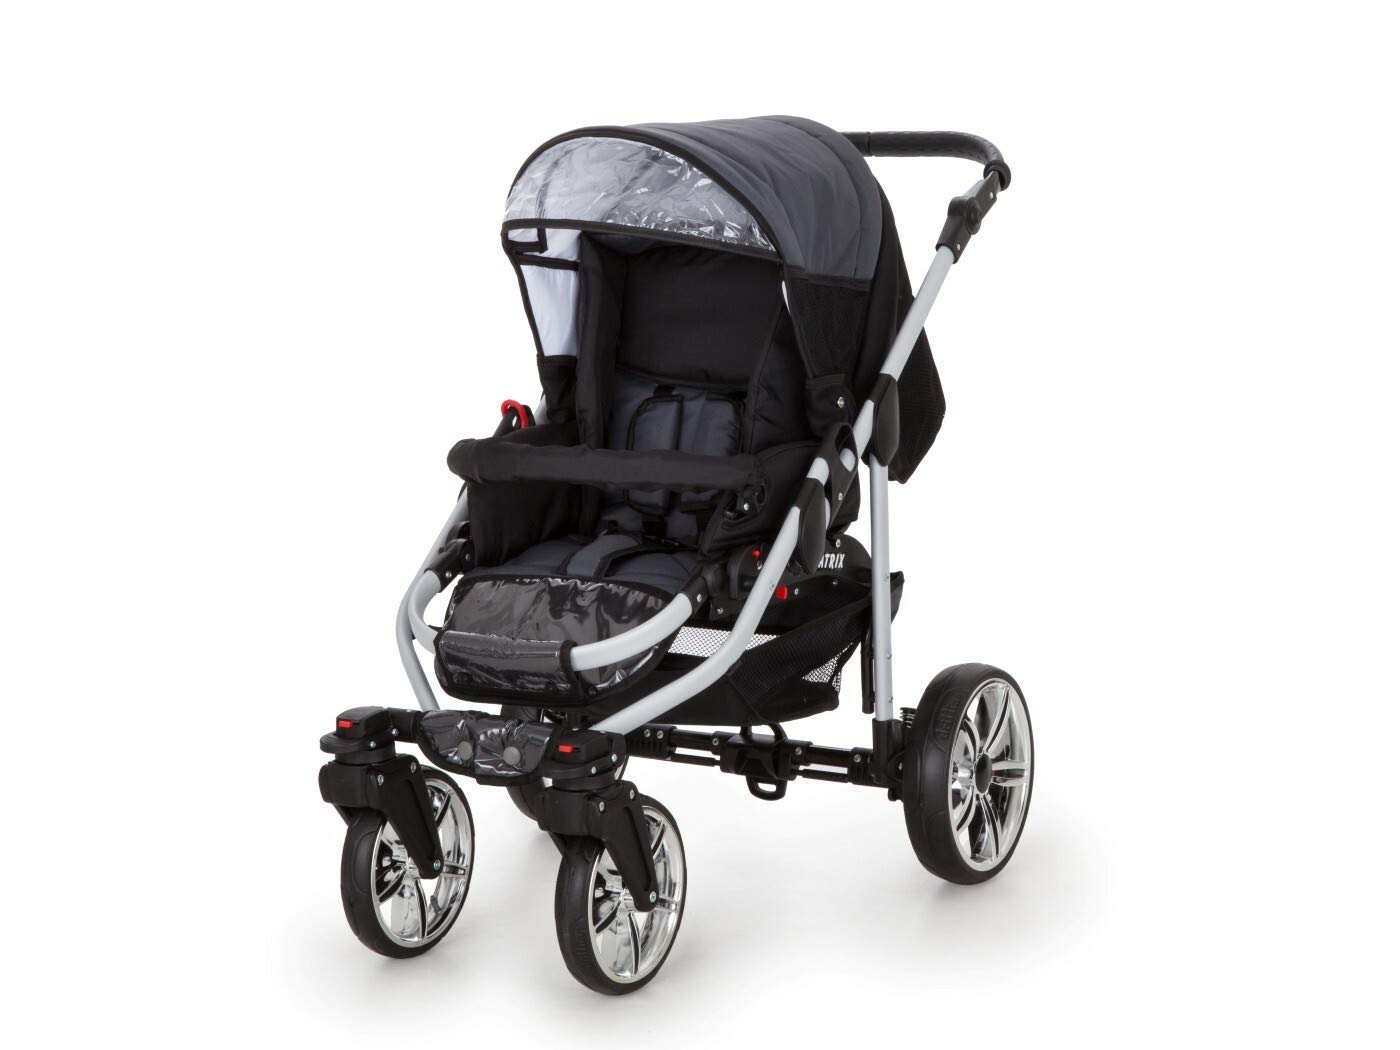 Travel System Stroller Pram Pushchair 2in1 3in1 Set Isofix X-Car by SaintBaby Black & Check 3in1 with Baby seat SaintBaby 3in1 or 2in1 Selectable. At 3in1 you will also receive the car seat (baby seat). Of course you get the baby tub (classic pram) as well as the buggy attachment (sports seat) no matter if 2in1 or 3in1. The car naturally complies with the EU safety standard EN1888. During production and before shipment, each wagon is carefully inspected so that you can be sure you have one of the best wagons. Saintbaby stands for all-in-one carefree packages, so you will also receive a diaper bag in the same colour as the car as well as rain and insect protection free of charge. With all the colours of this pram you will find the pram of your dreams. 5